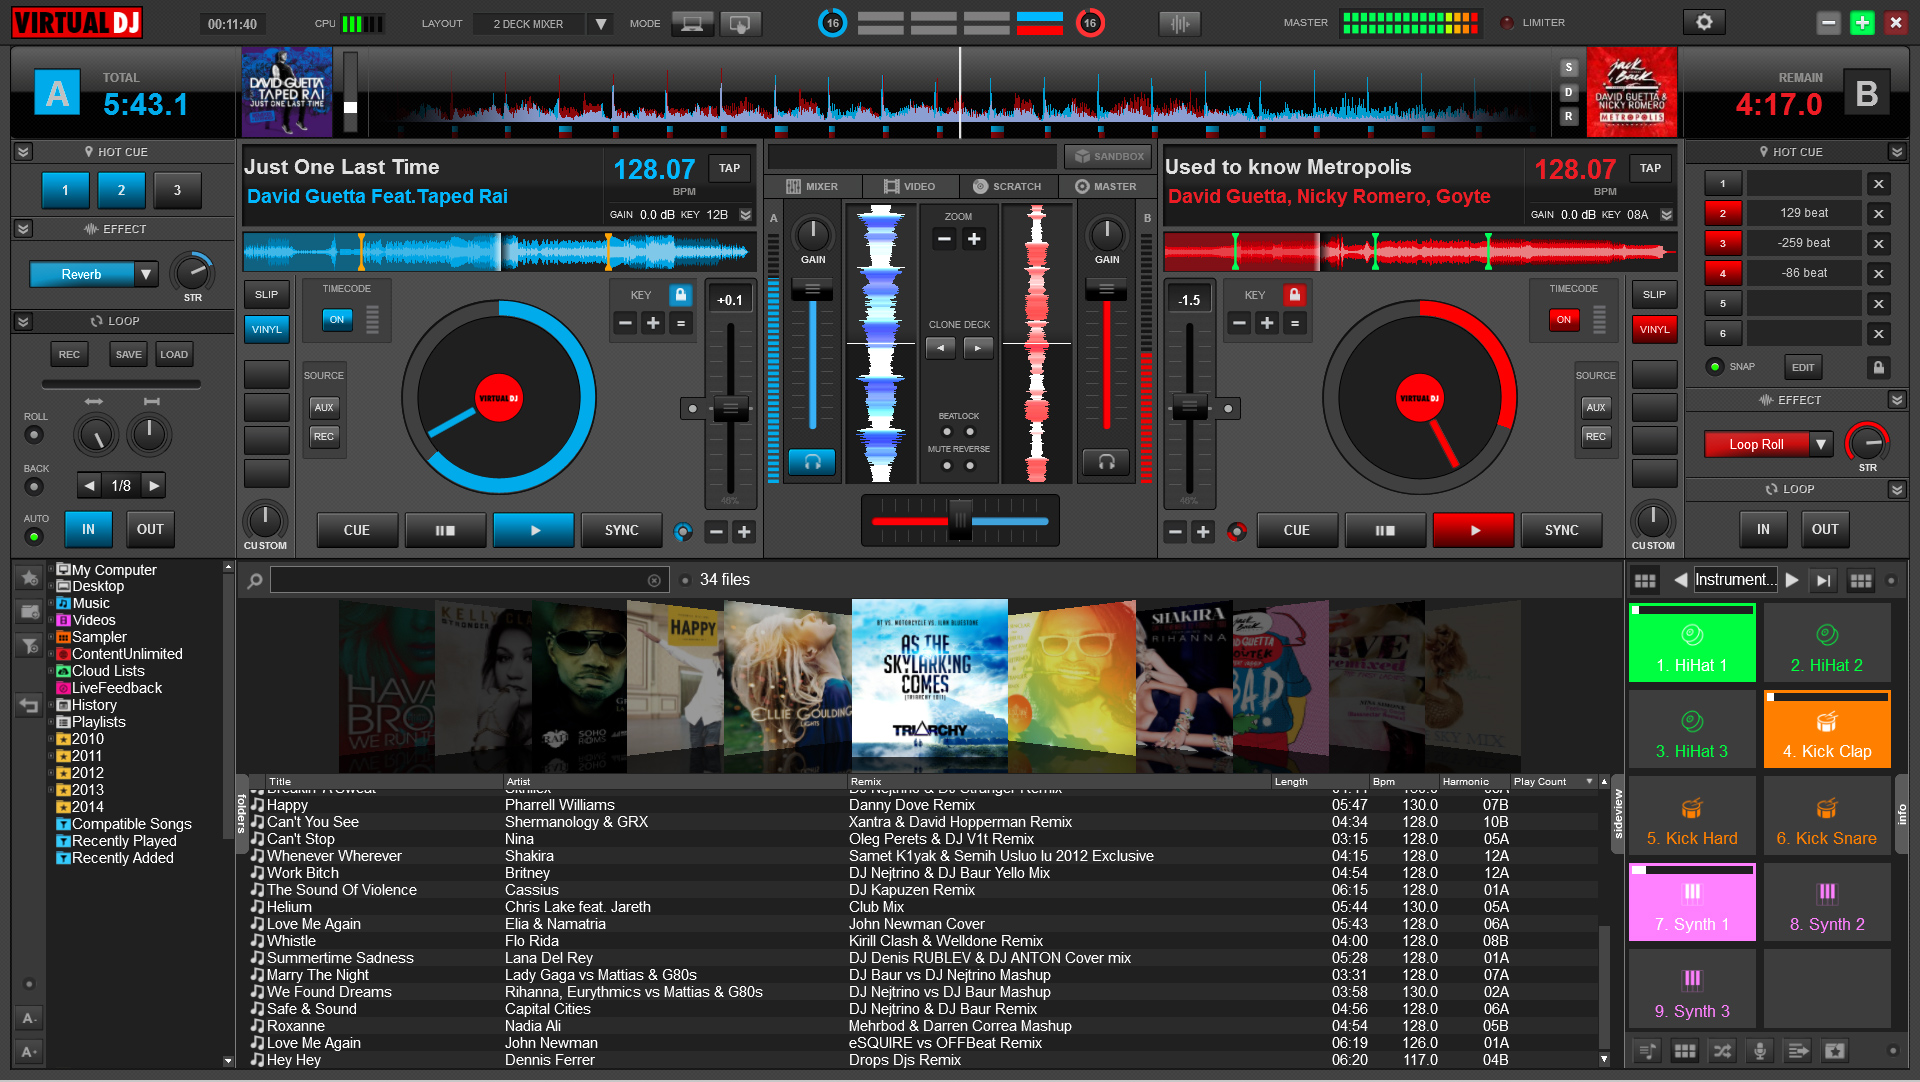 Virtual DJ Home 2021 B6042 full